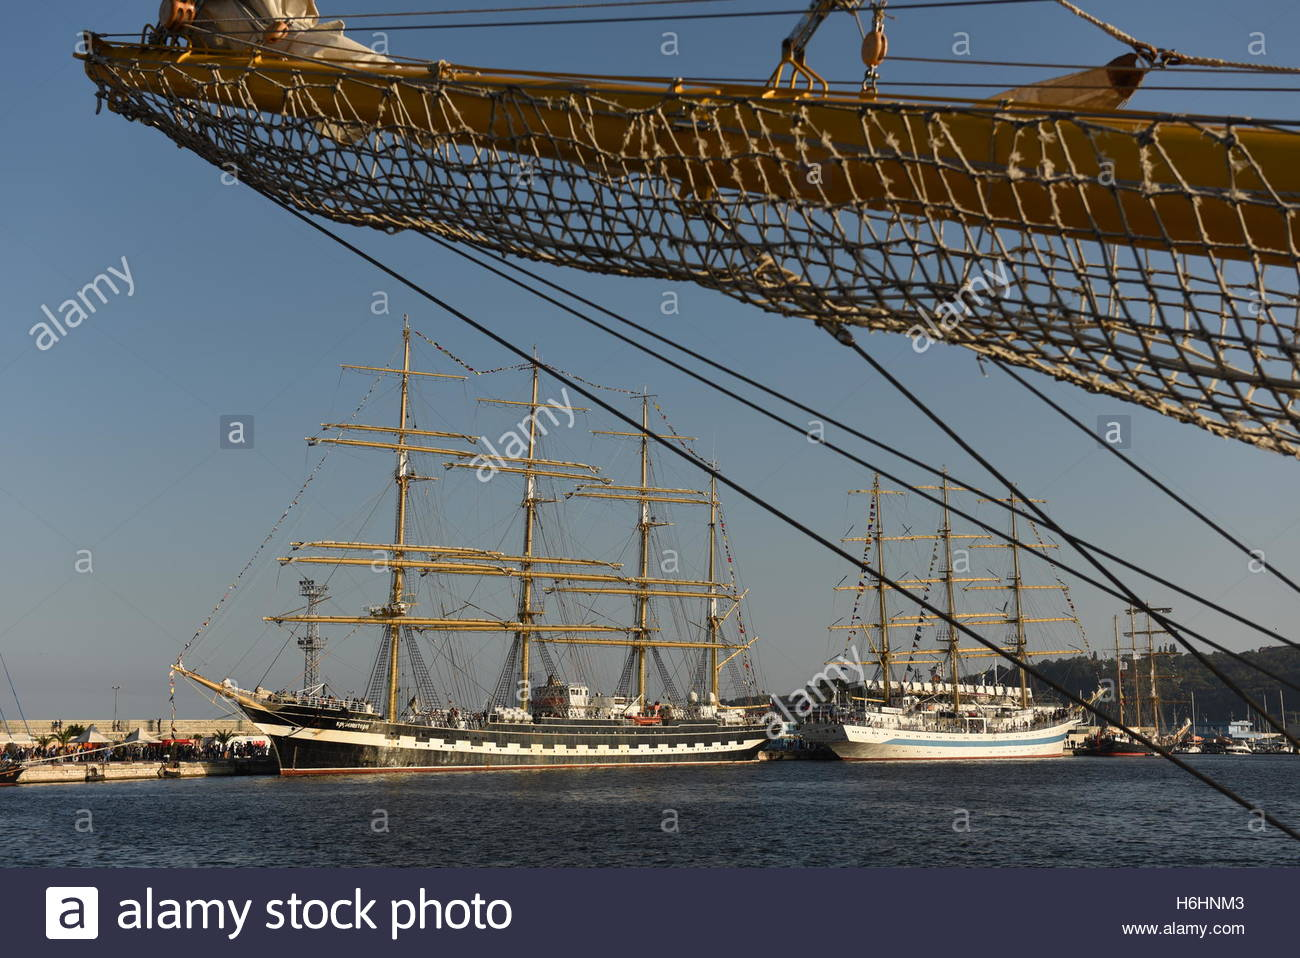 Tall ships with sails up at backdrop and ropes and nets rigging on foreground - Stock Image